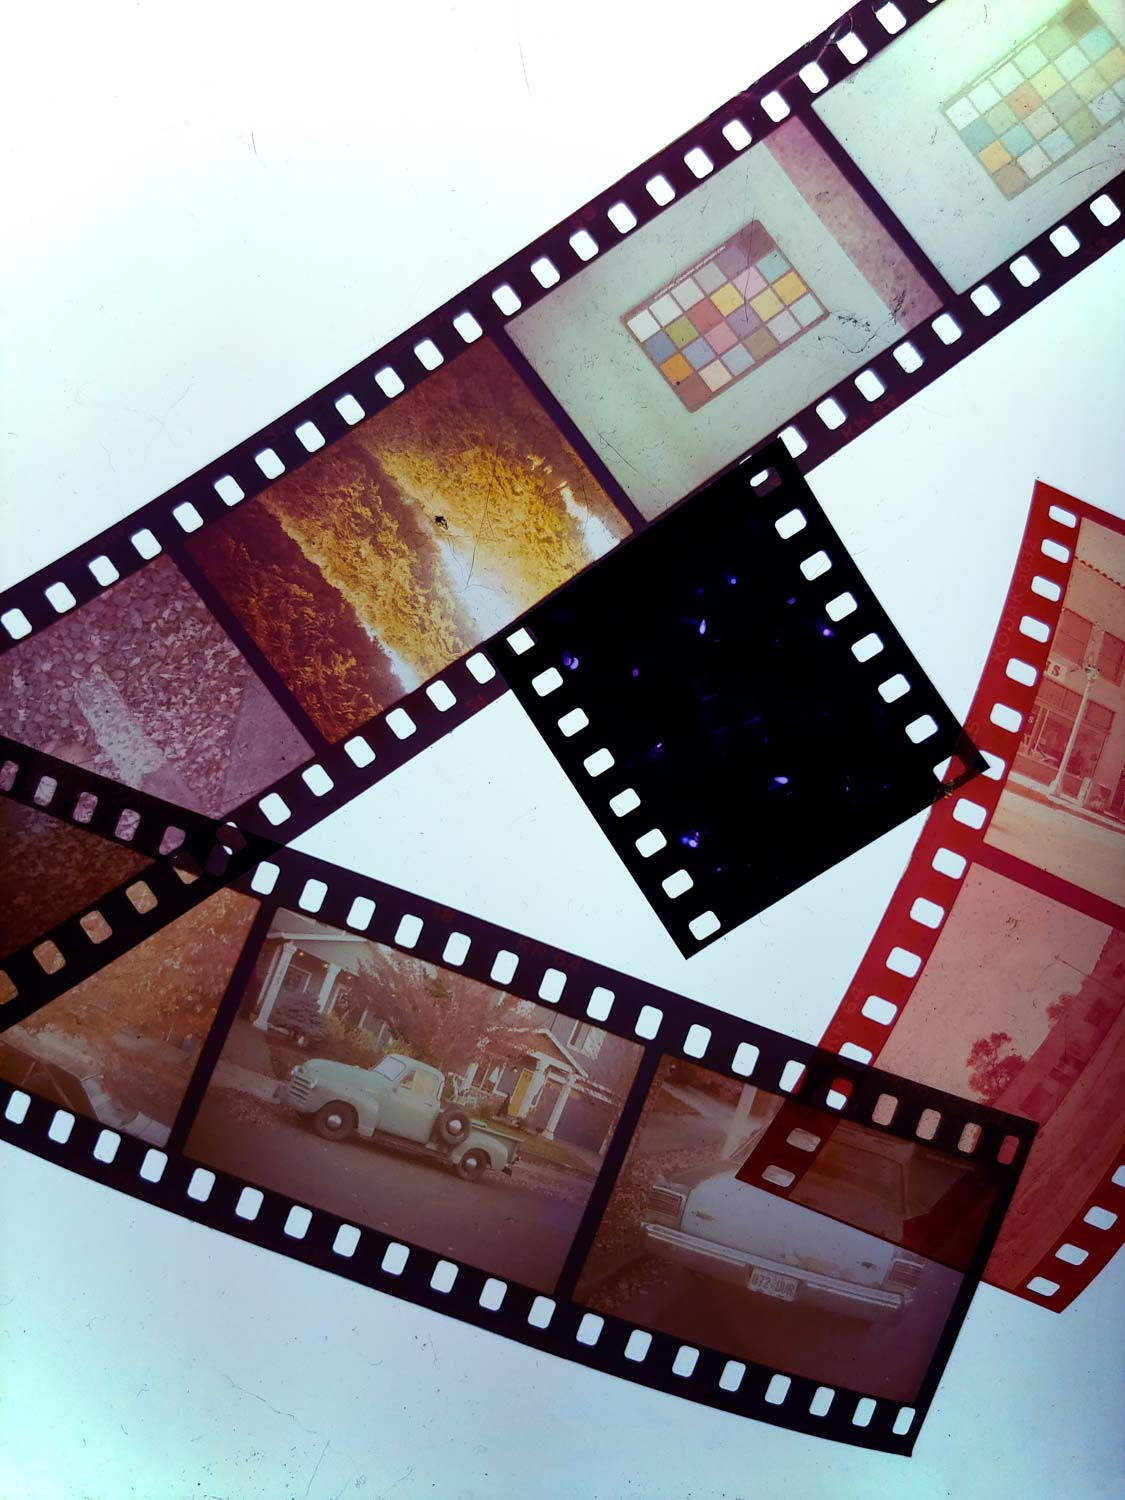 Kodachrome development success!